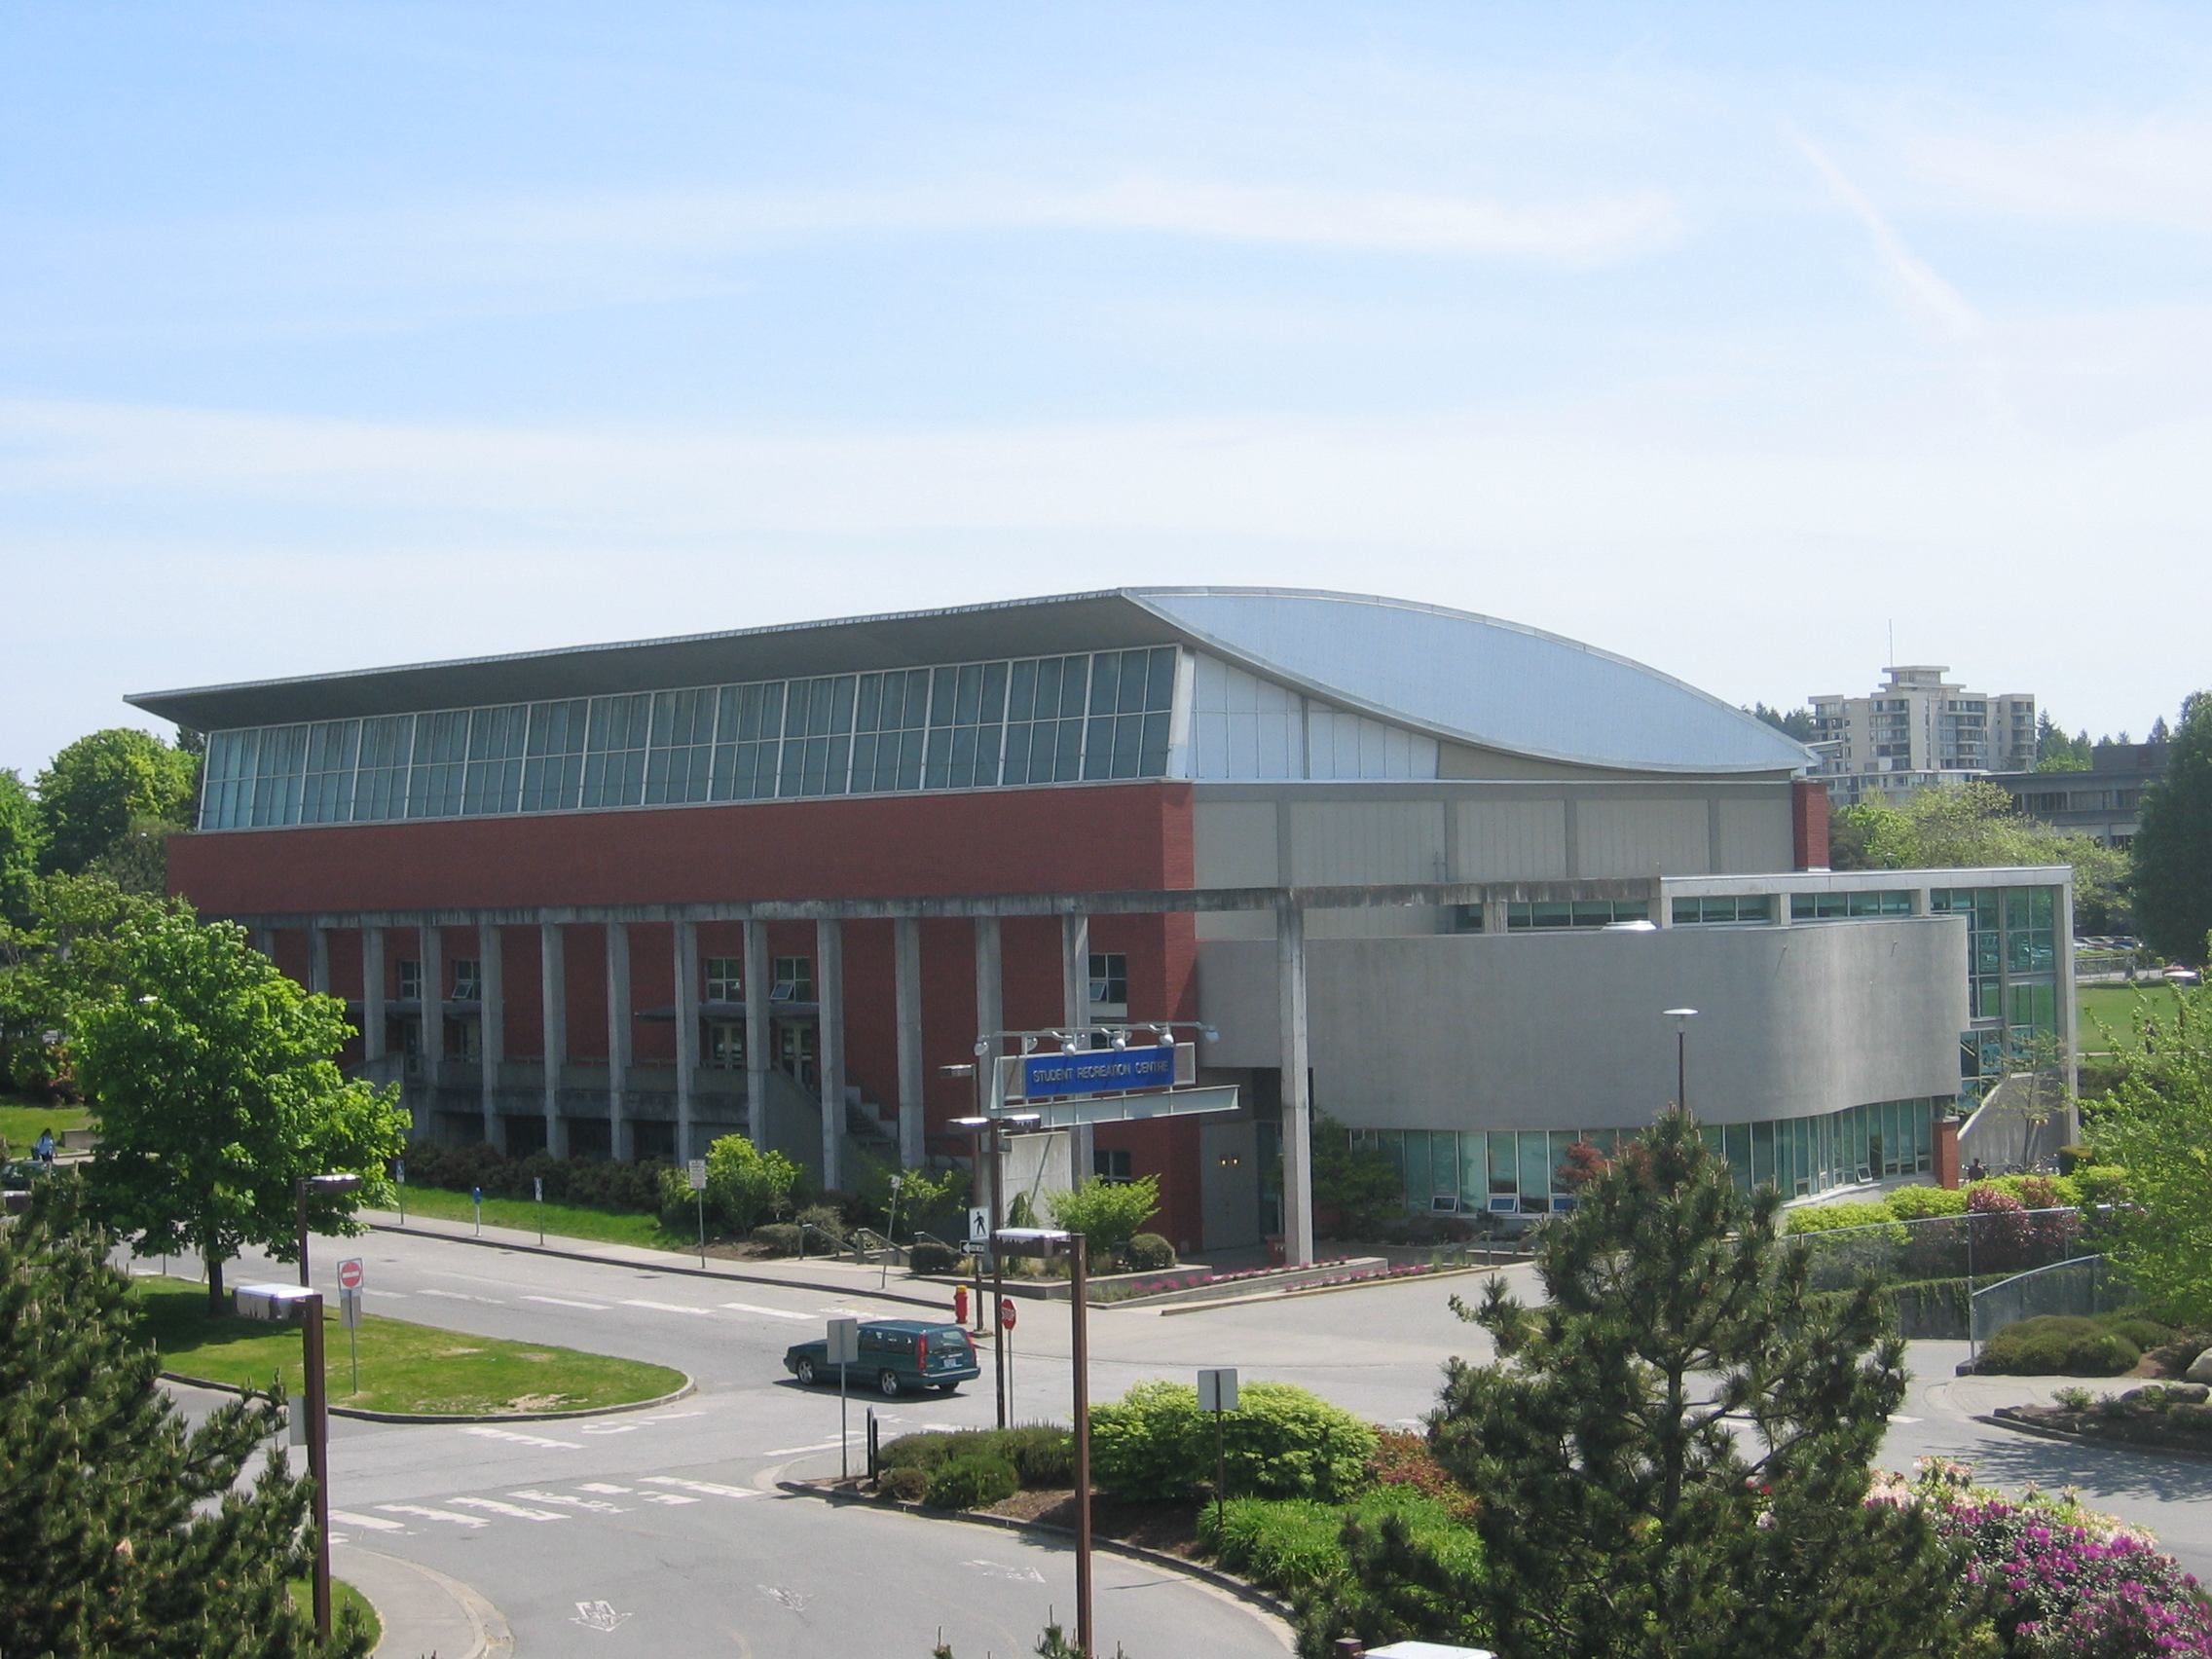 The Student Recreation Centre at the University of British Columbia